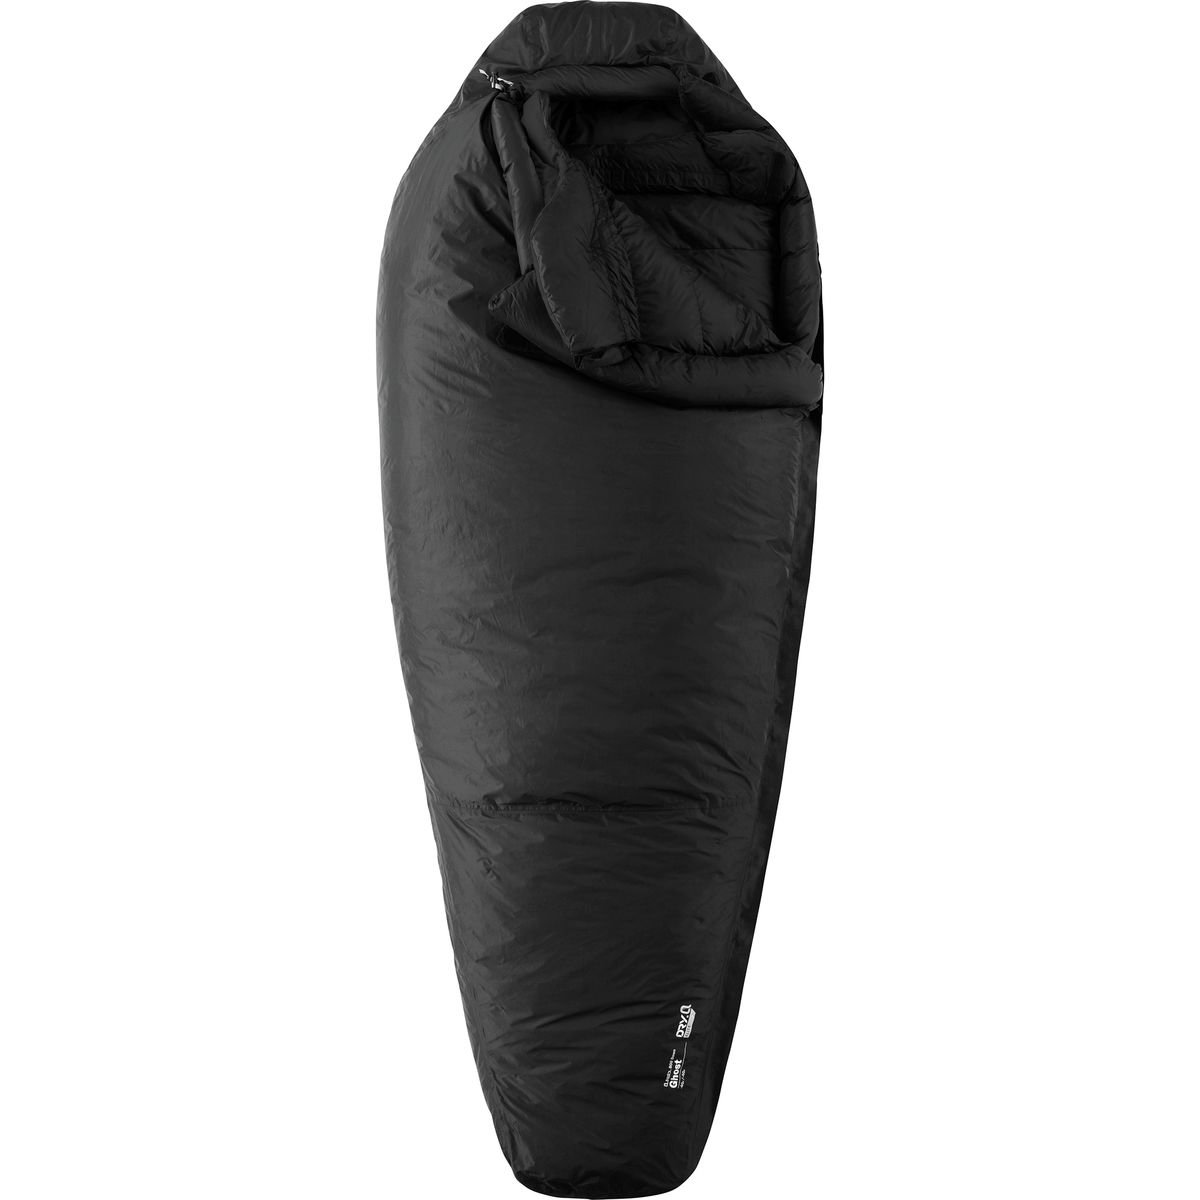 An image of Mountain Hardwear Ghost 40 Degree Sleeping Bag